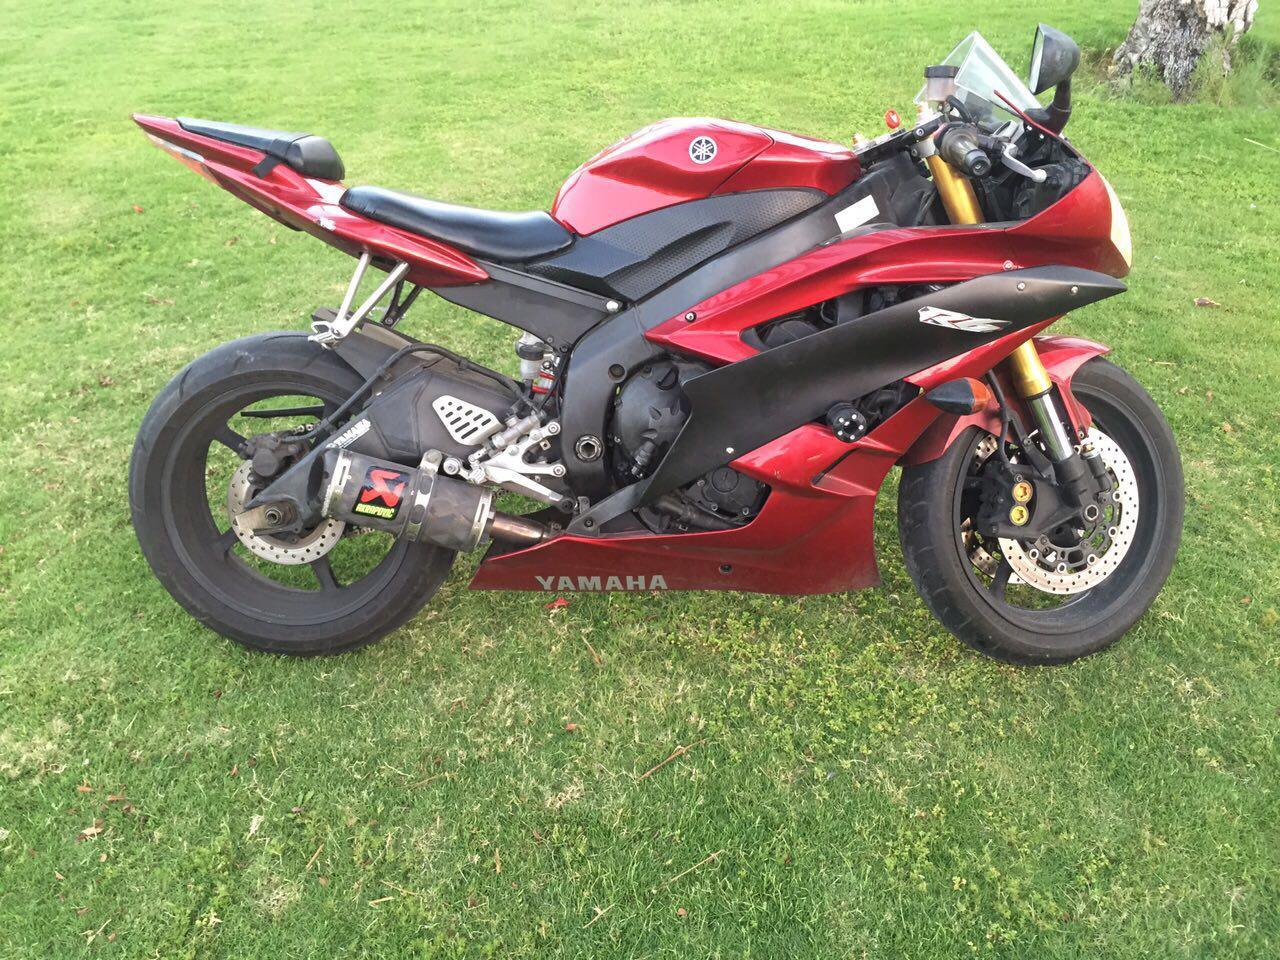 for sale yamaha yamaha yzf r6 600cc 2007 55000 egp motorcycles egypt. Black Bedroom Furniture Sets. Home Design Ideas